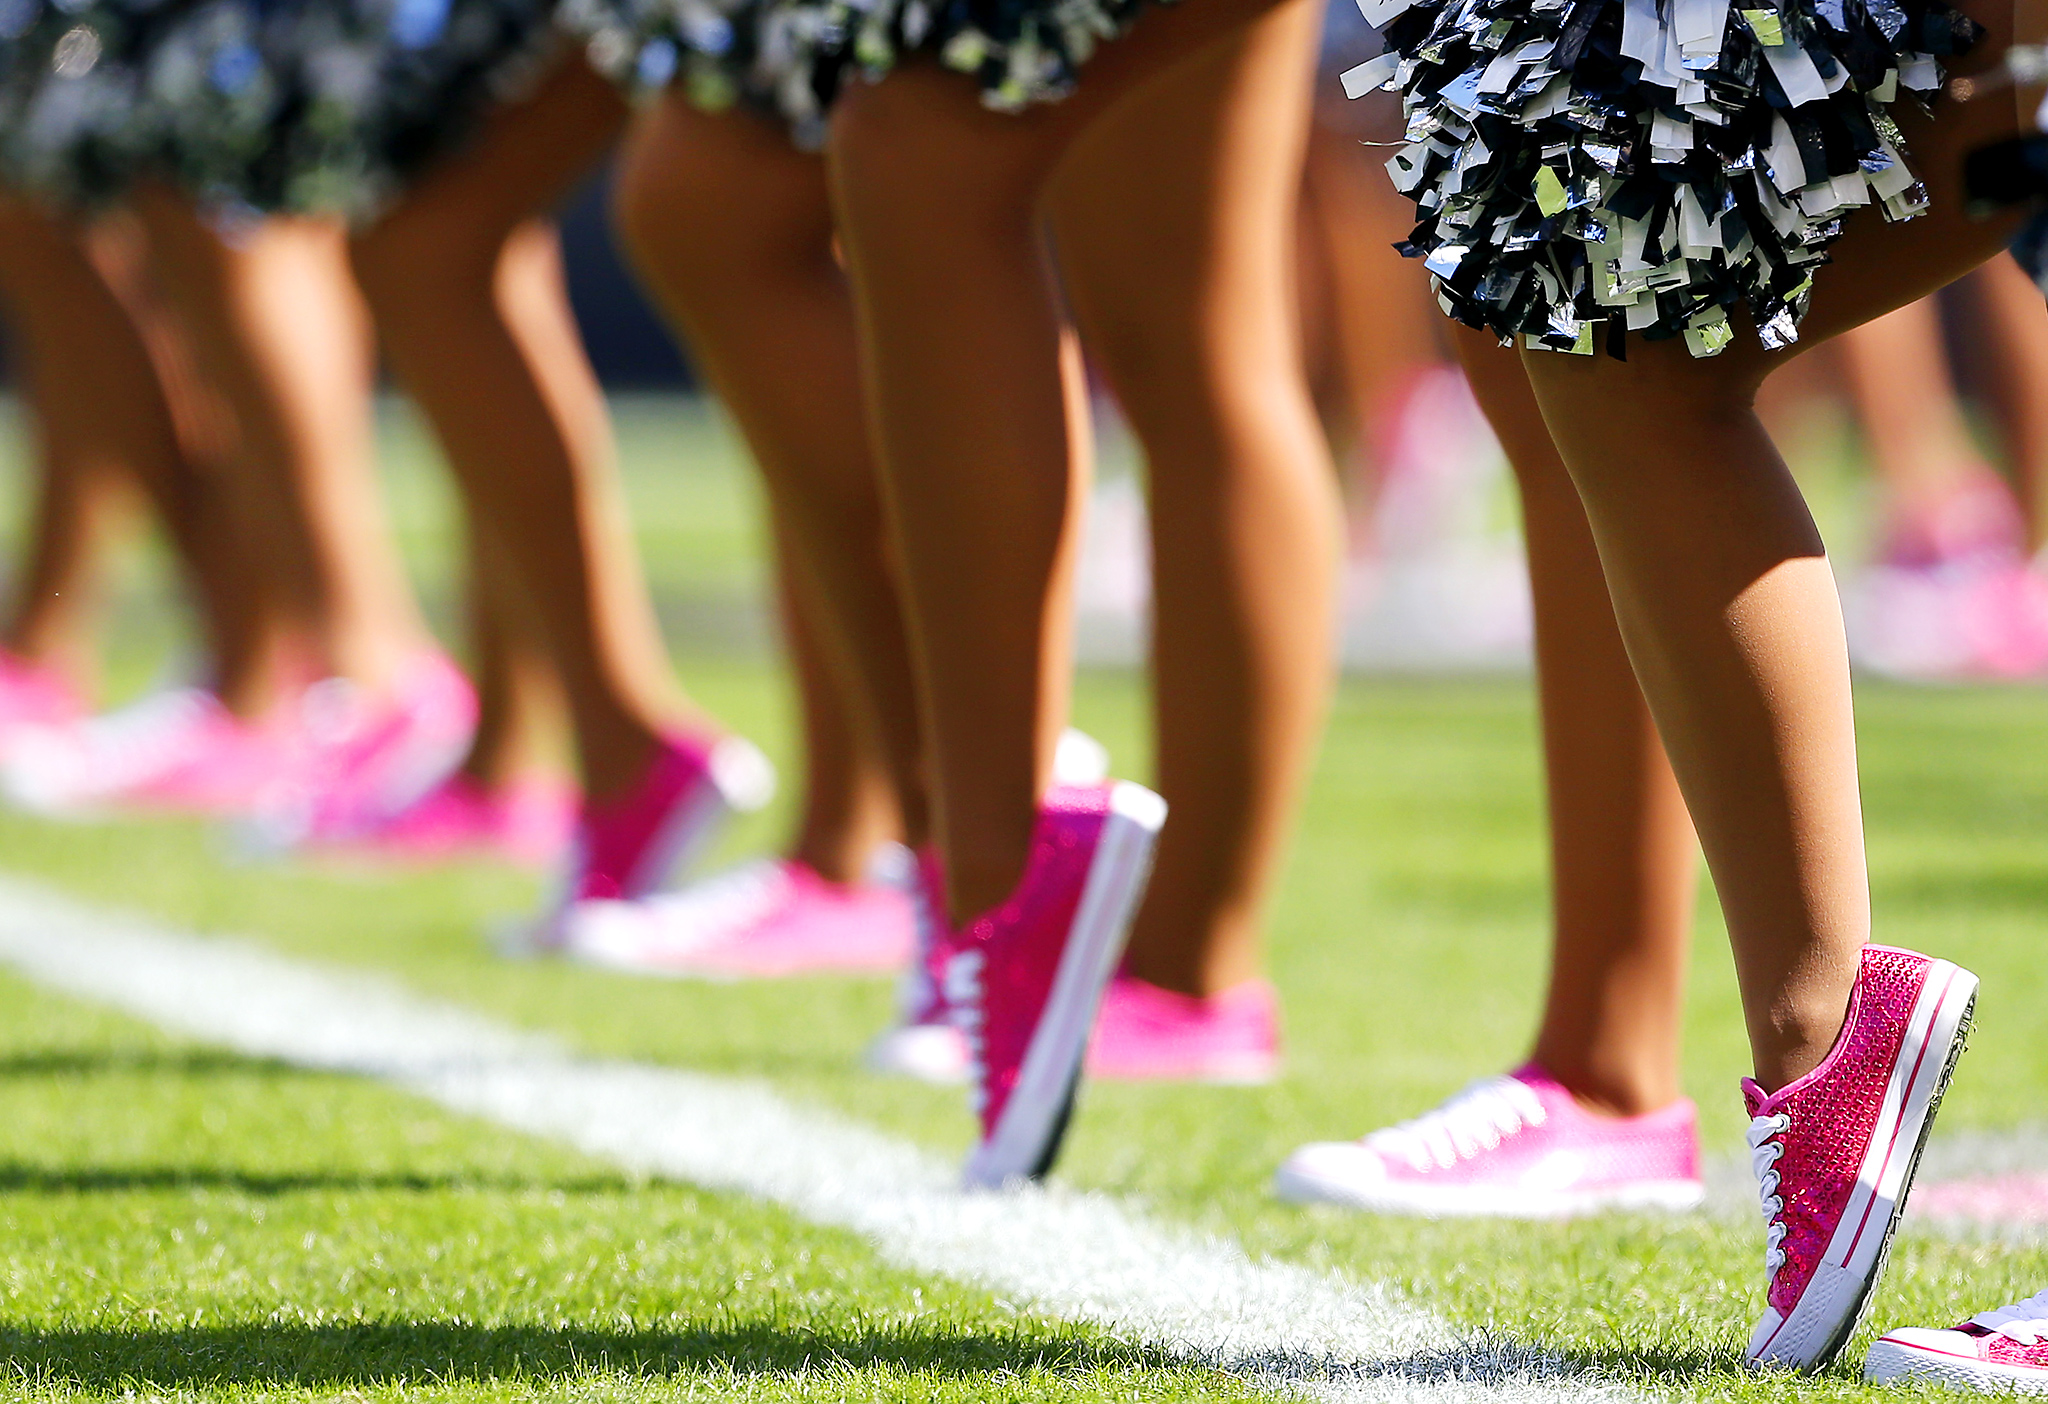 Philadelphia Eagles Cheerleaders Nfl A Crucial Catch